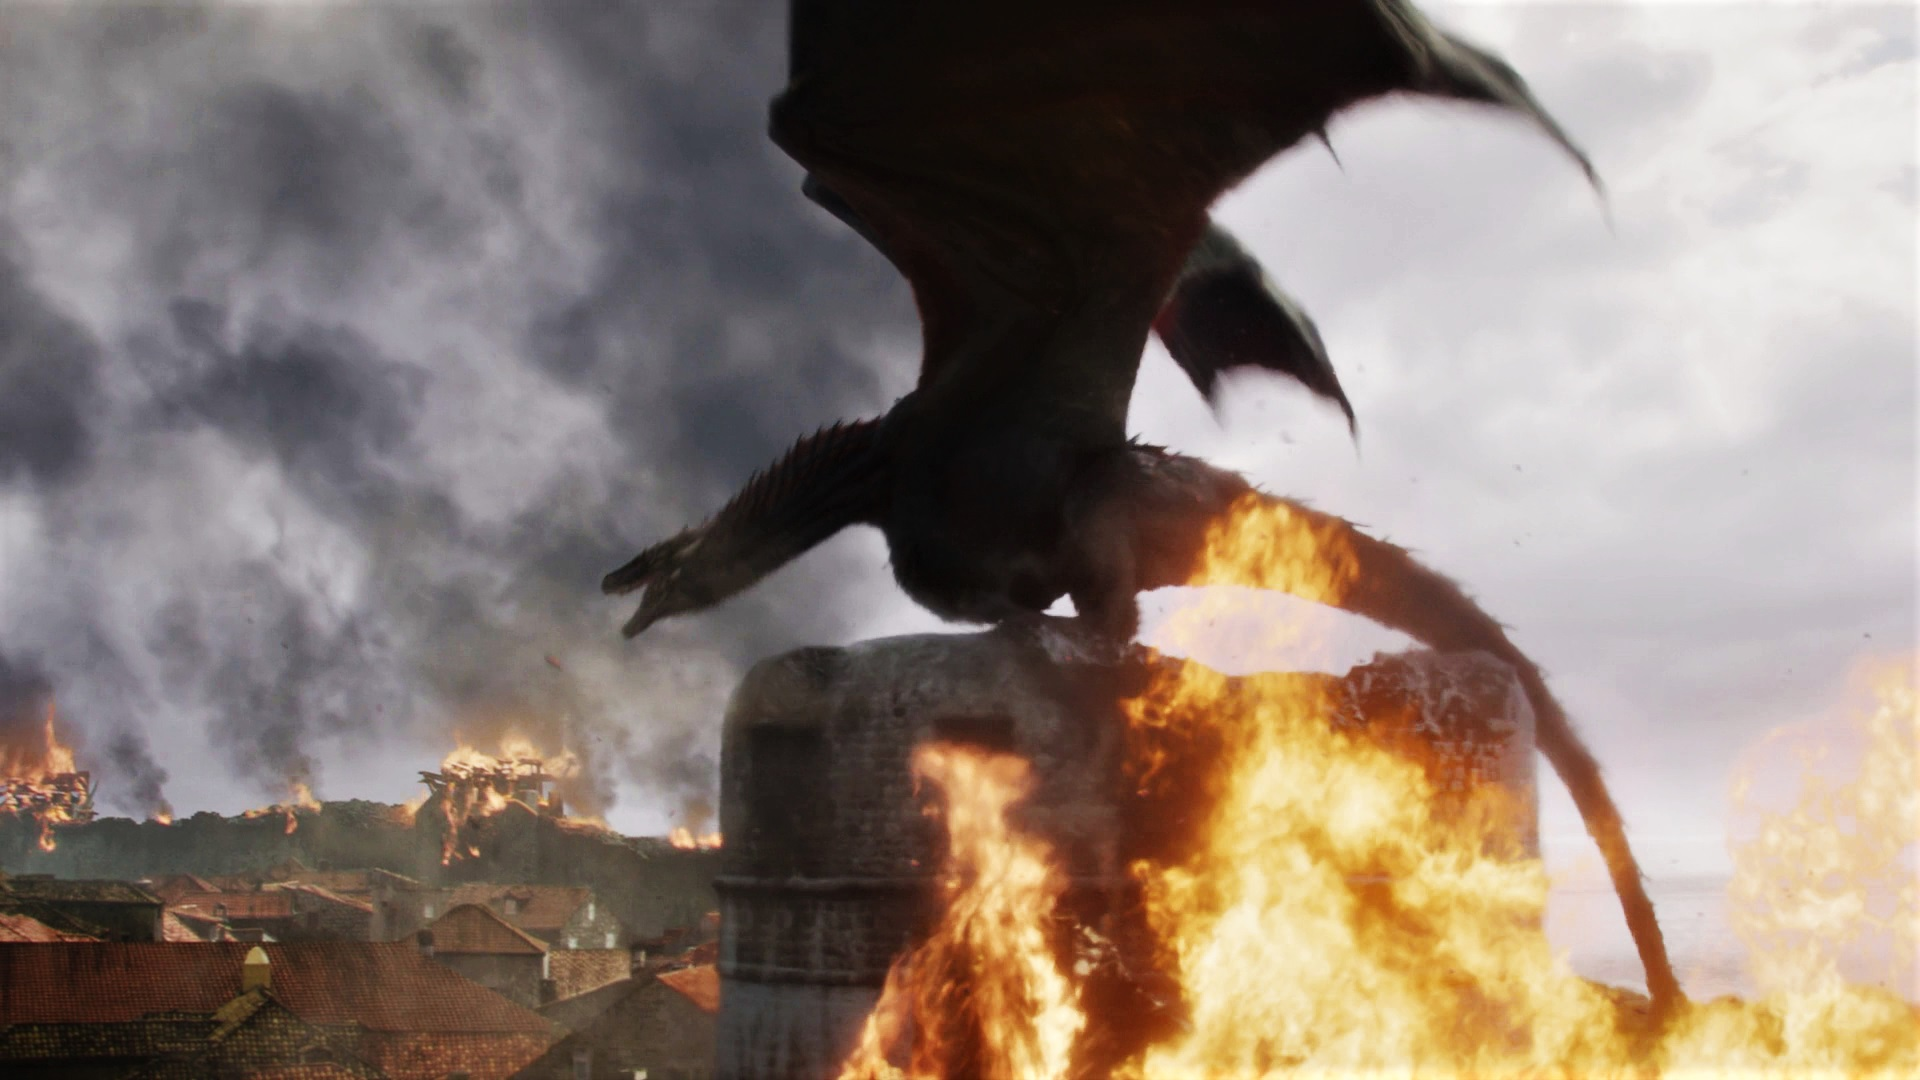 King's Landing Battle 805 Season 8 The Bells Drogon Daenerys Targaryen Decision